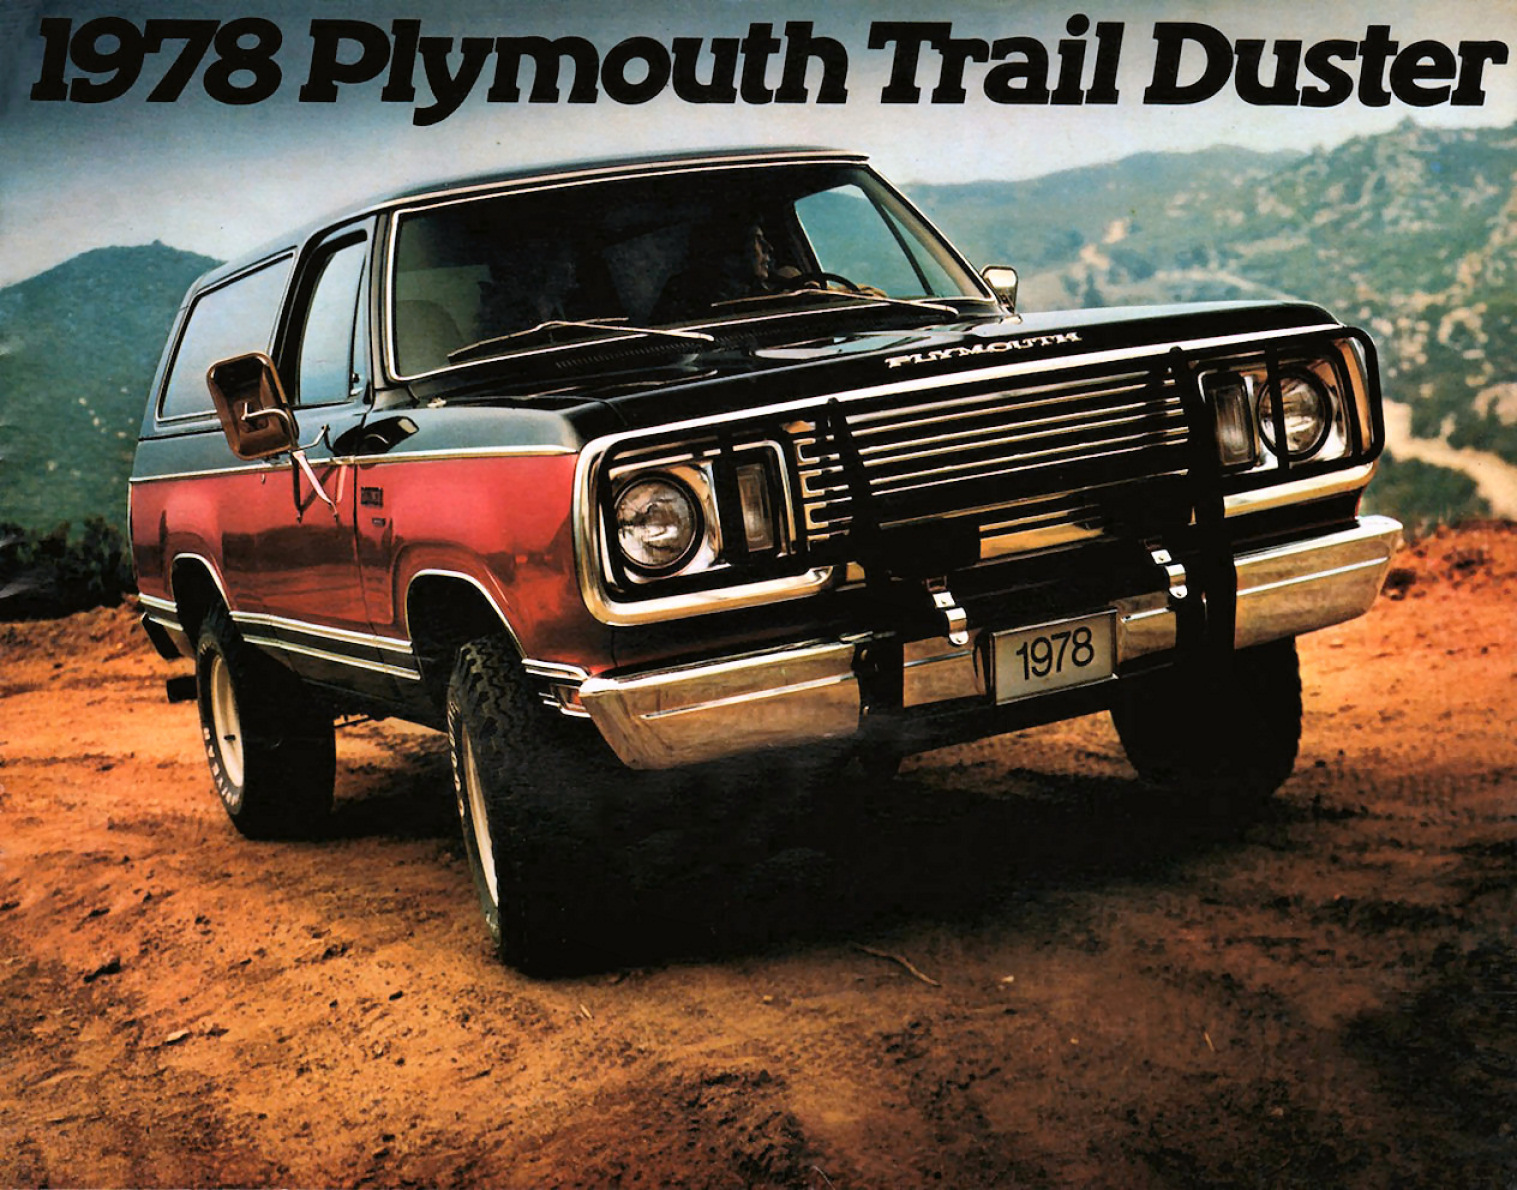 1978%2BPlymouth%2BTrail%2BDuster 01 daydream notes making a new model 1 24 revell dodge ramcharger  at aneh.co